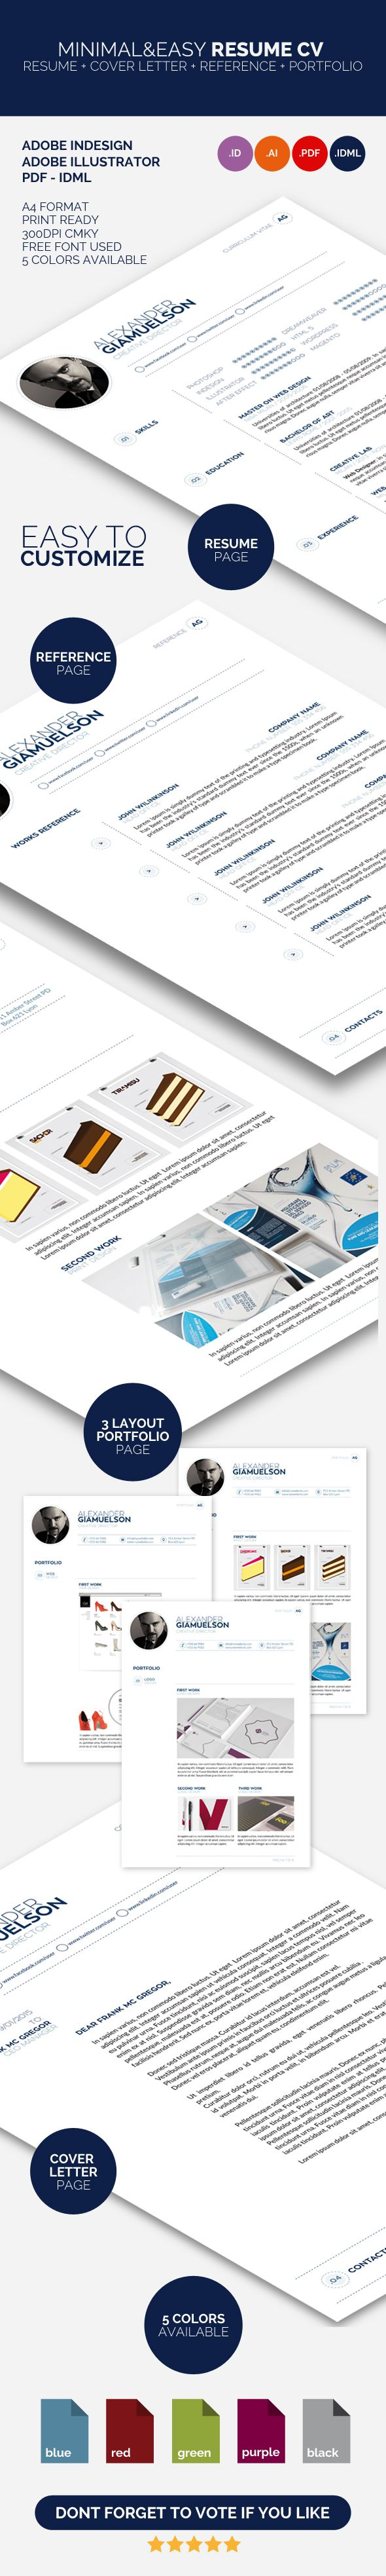 Minimal&Easy Resume Cv is a my new version of professional cv and resume template.